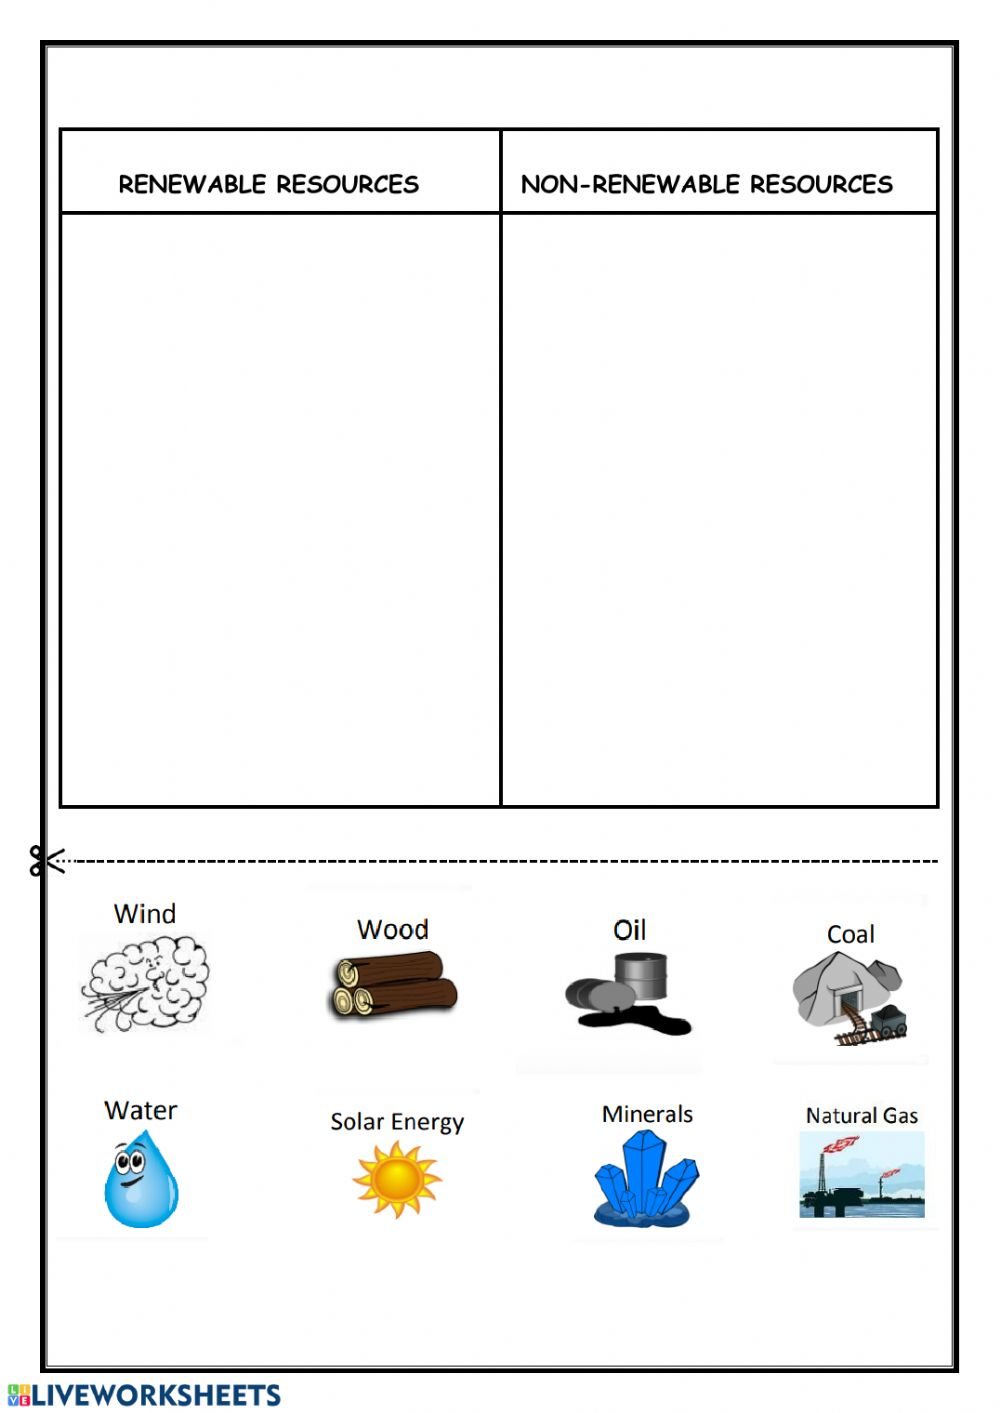 medium resolution of RENEWABLE RESOURCES and NON-RENEWABLE RESOURCES worksheet